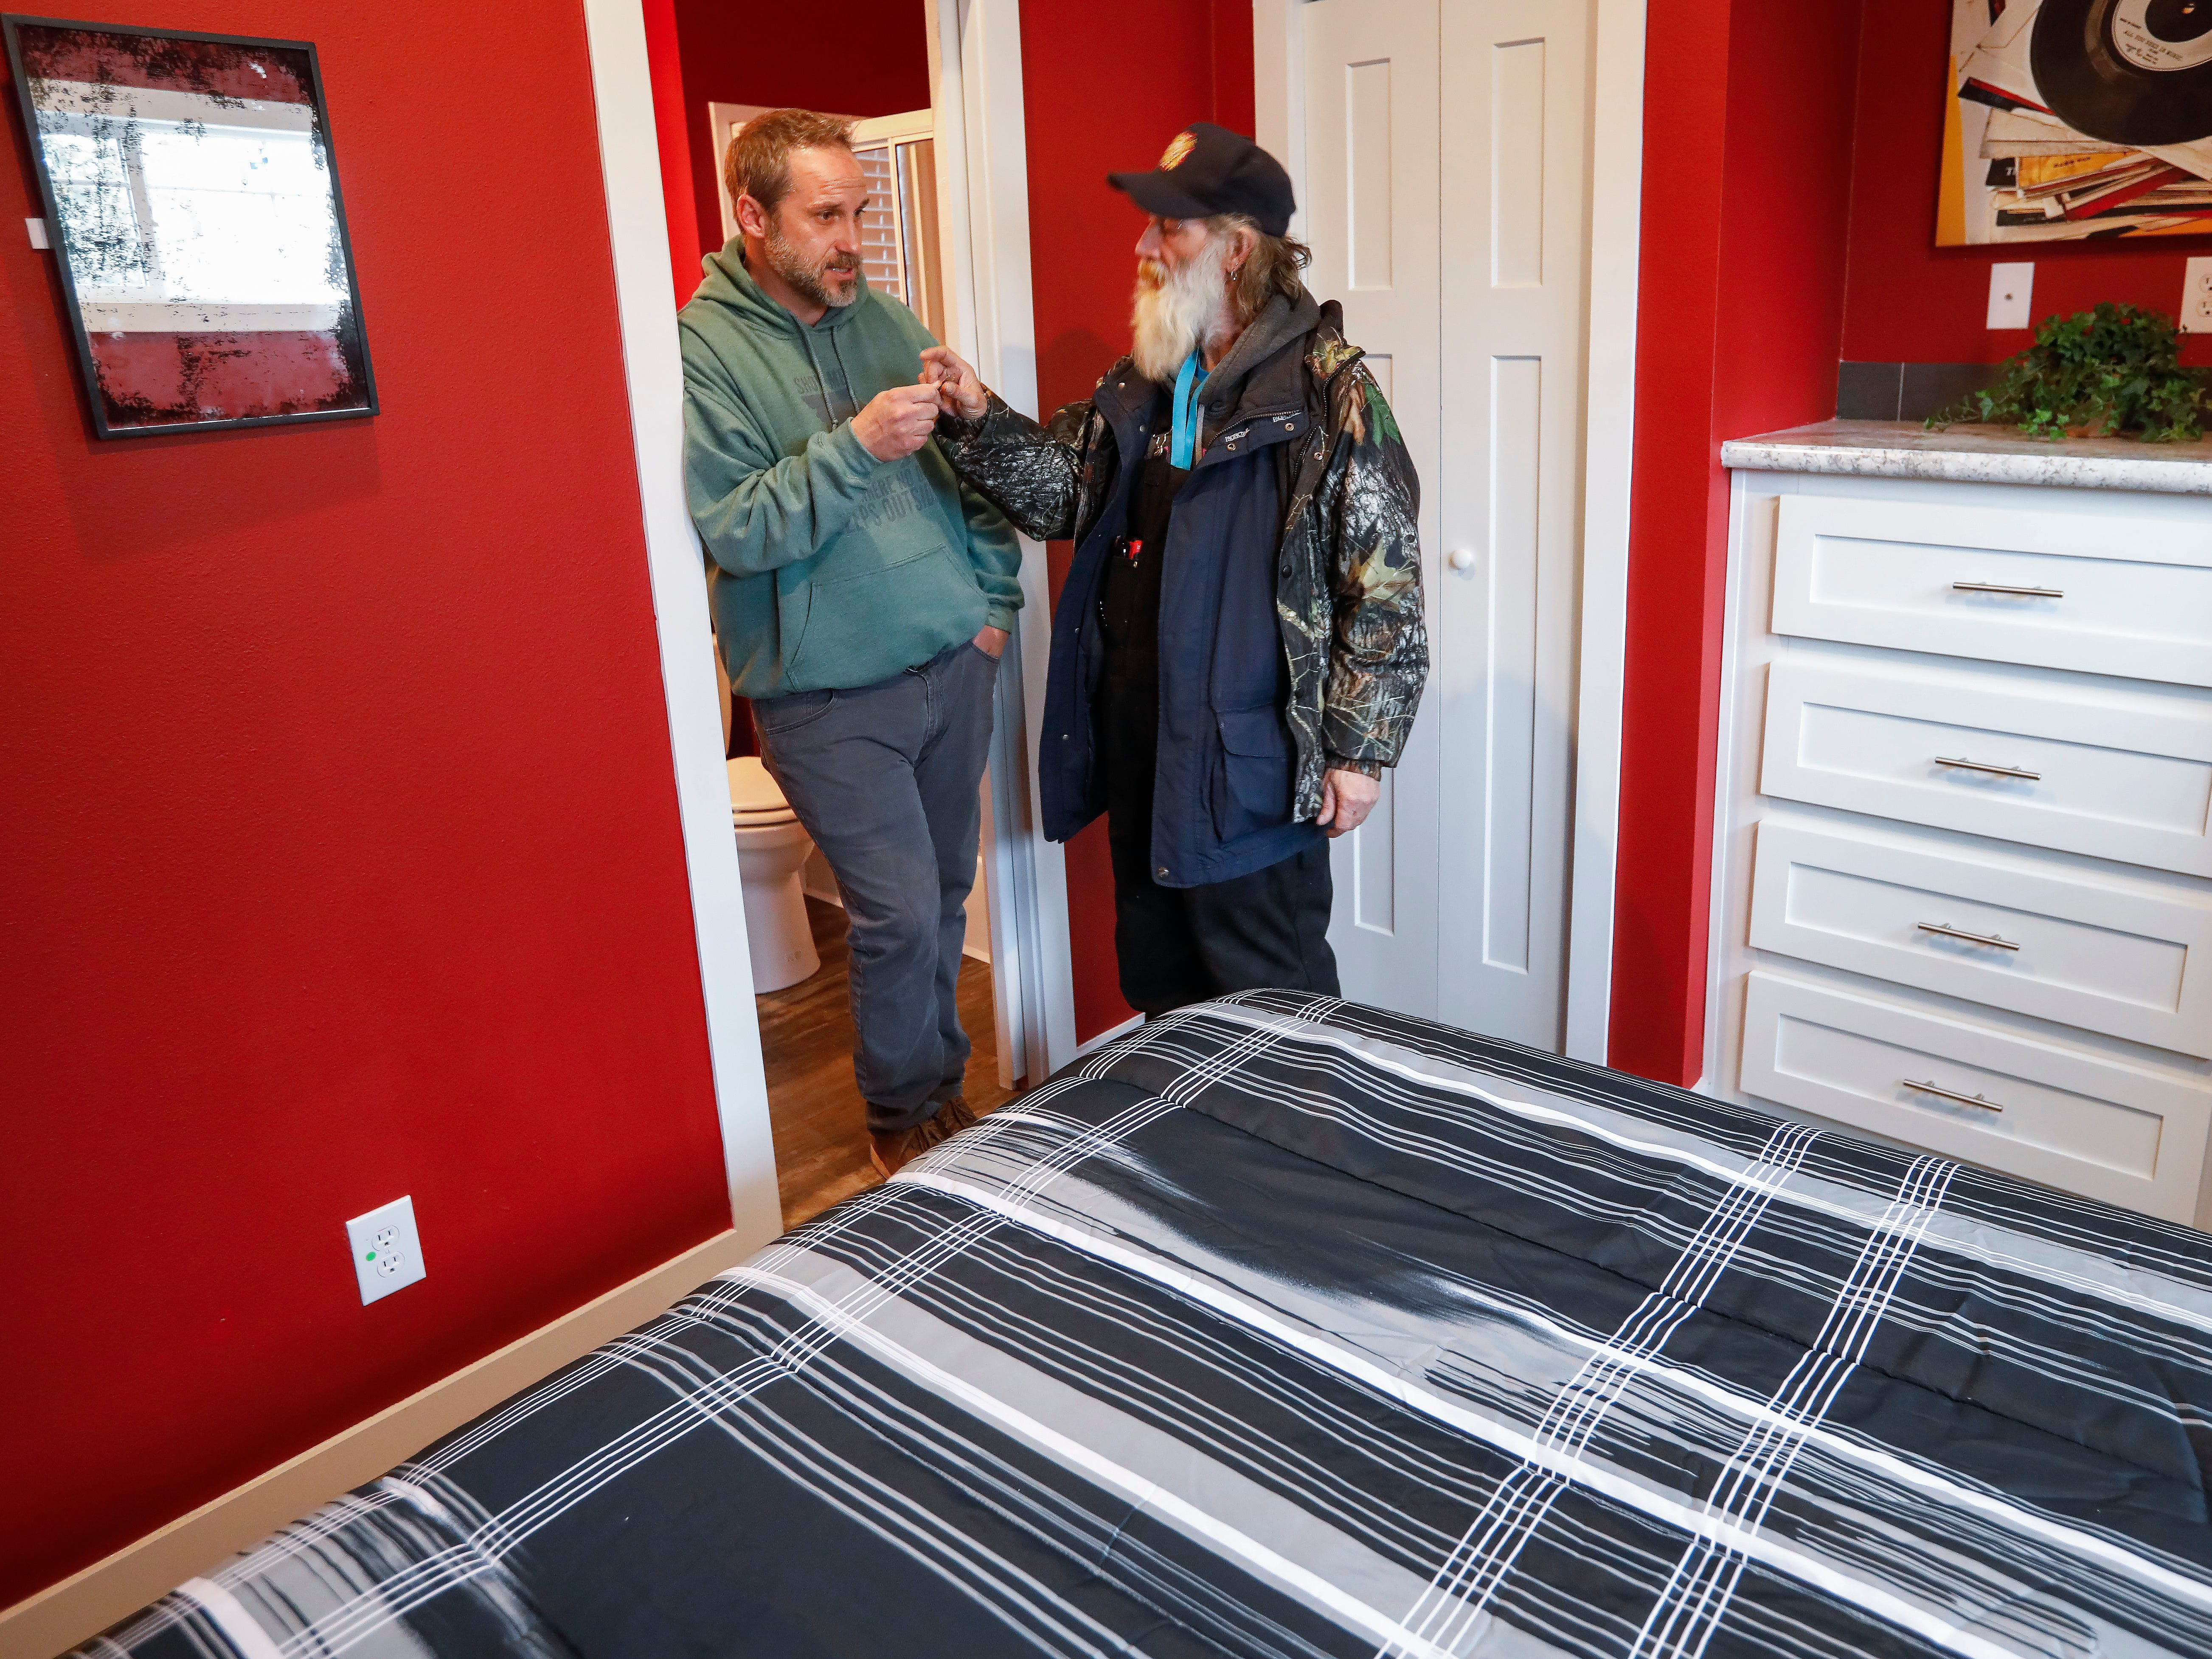 Nate Schlueter, left, COO of Eden Village, hands Gil Rife the key to his new home at the tiny home community on Thursday, Feb. 21, 2019.